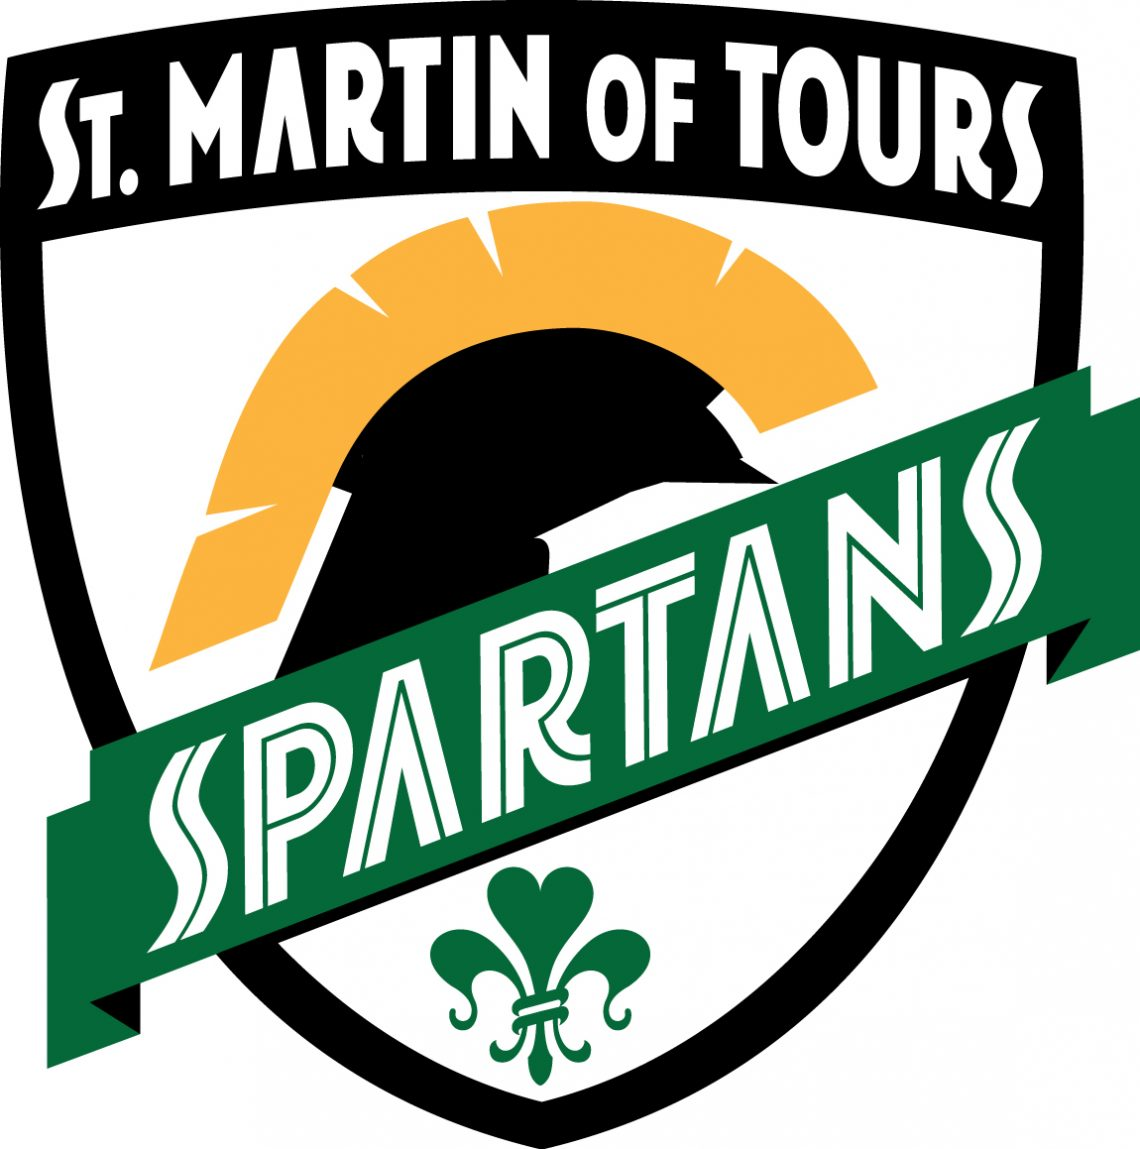 StMartinSpartans